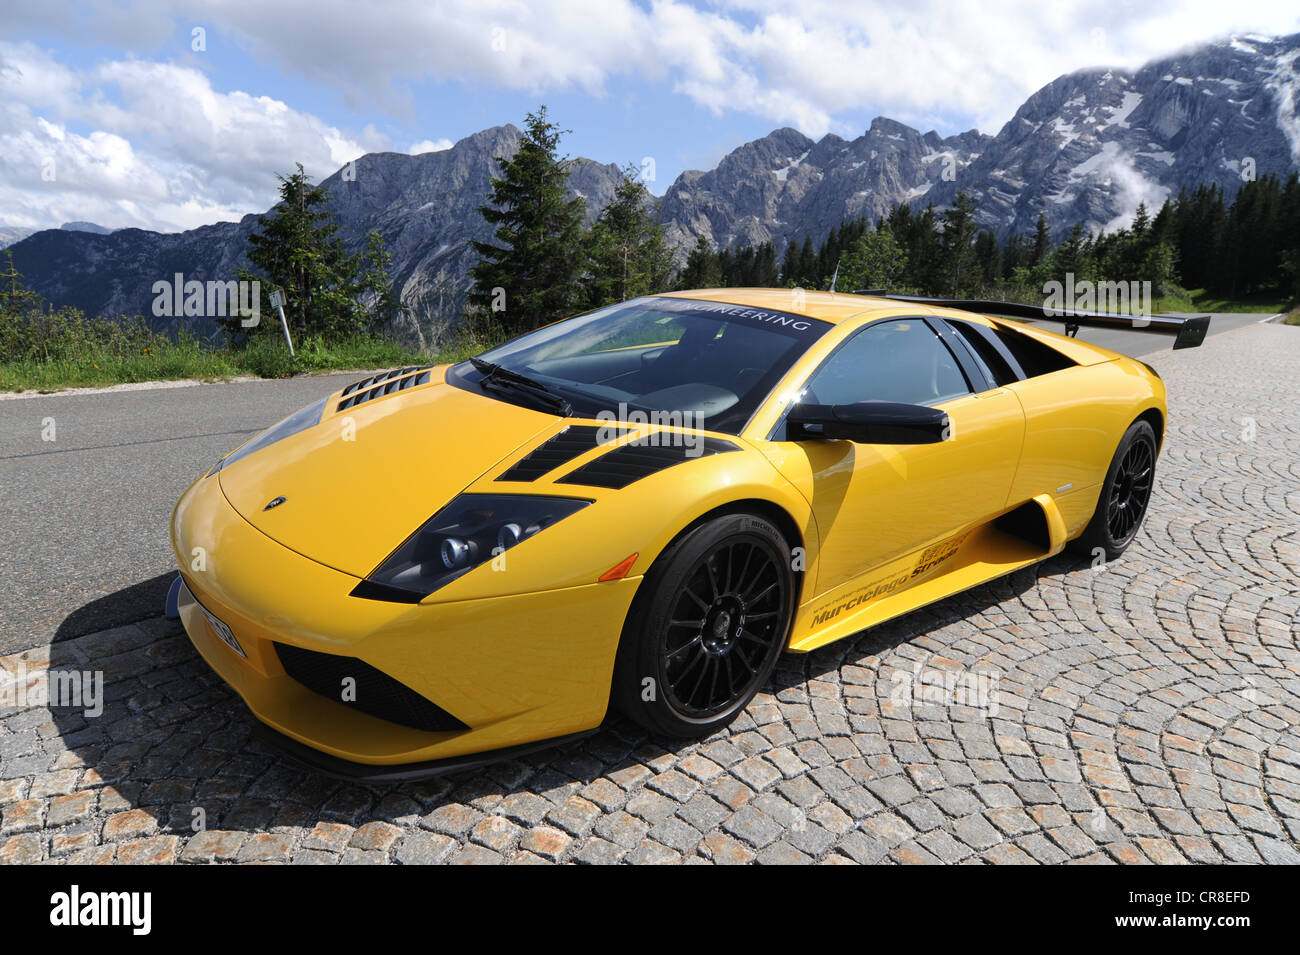 Reiter Lamborghini Murcielago Strada GT, Racing Car With Road Use  Homolgation, Bad Reichenhall,